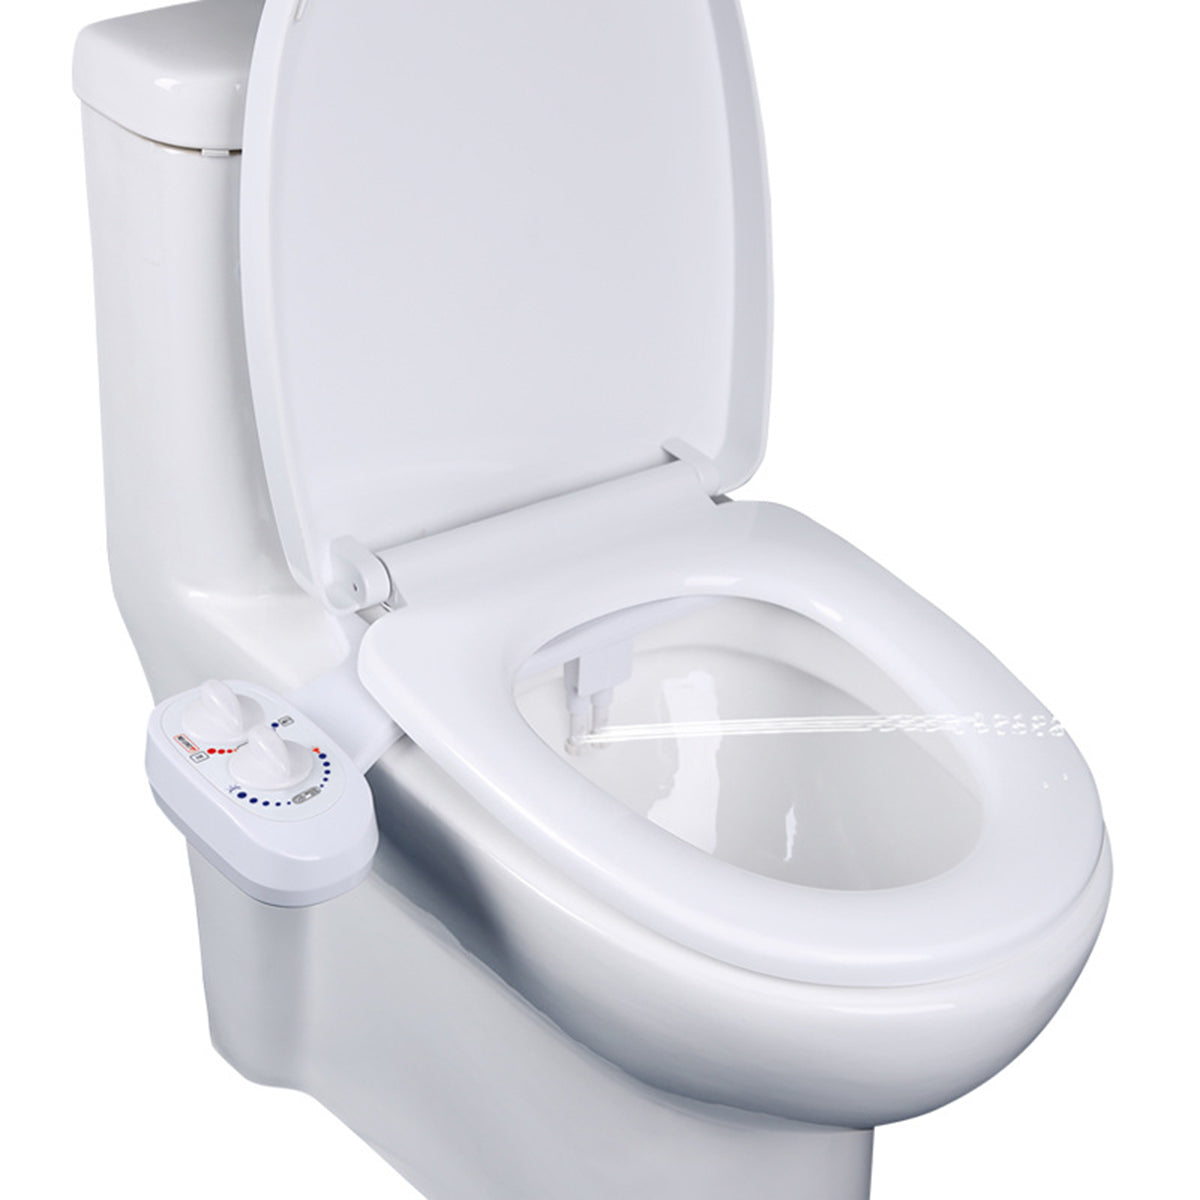 Non-Electric Toilet Seat Bidet Sprayer Attachment Washing Self-Cleaning Dual Nozzle Cold/Hot Water